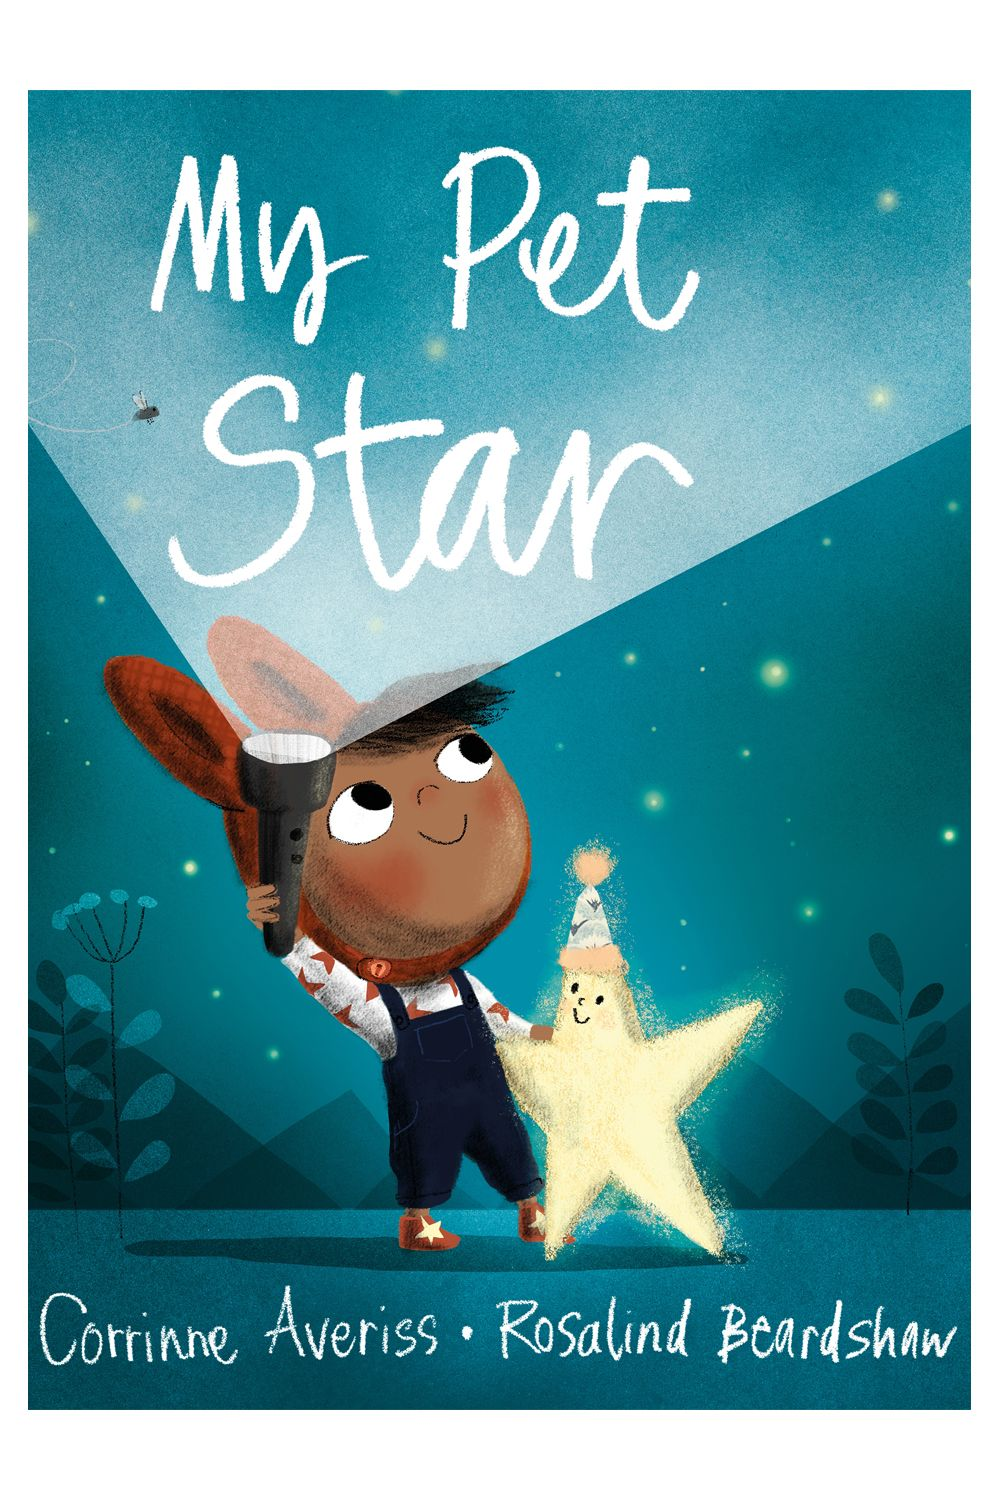 My Pet Star by Corrinne Averiss (illustrated by Rosalind Beardshaw)